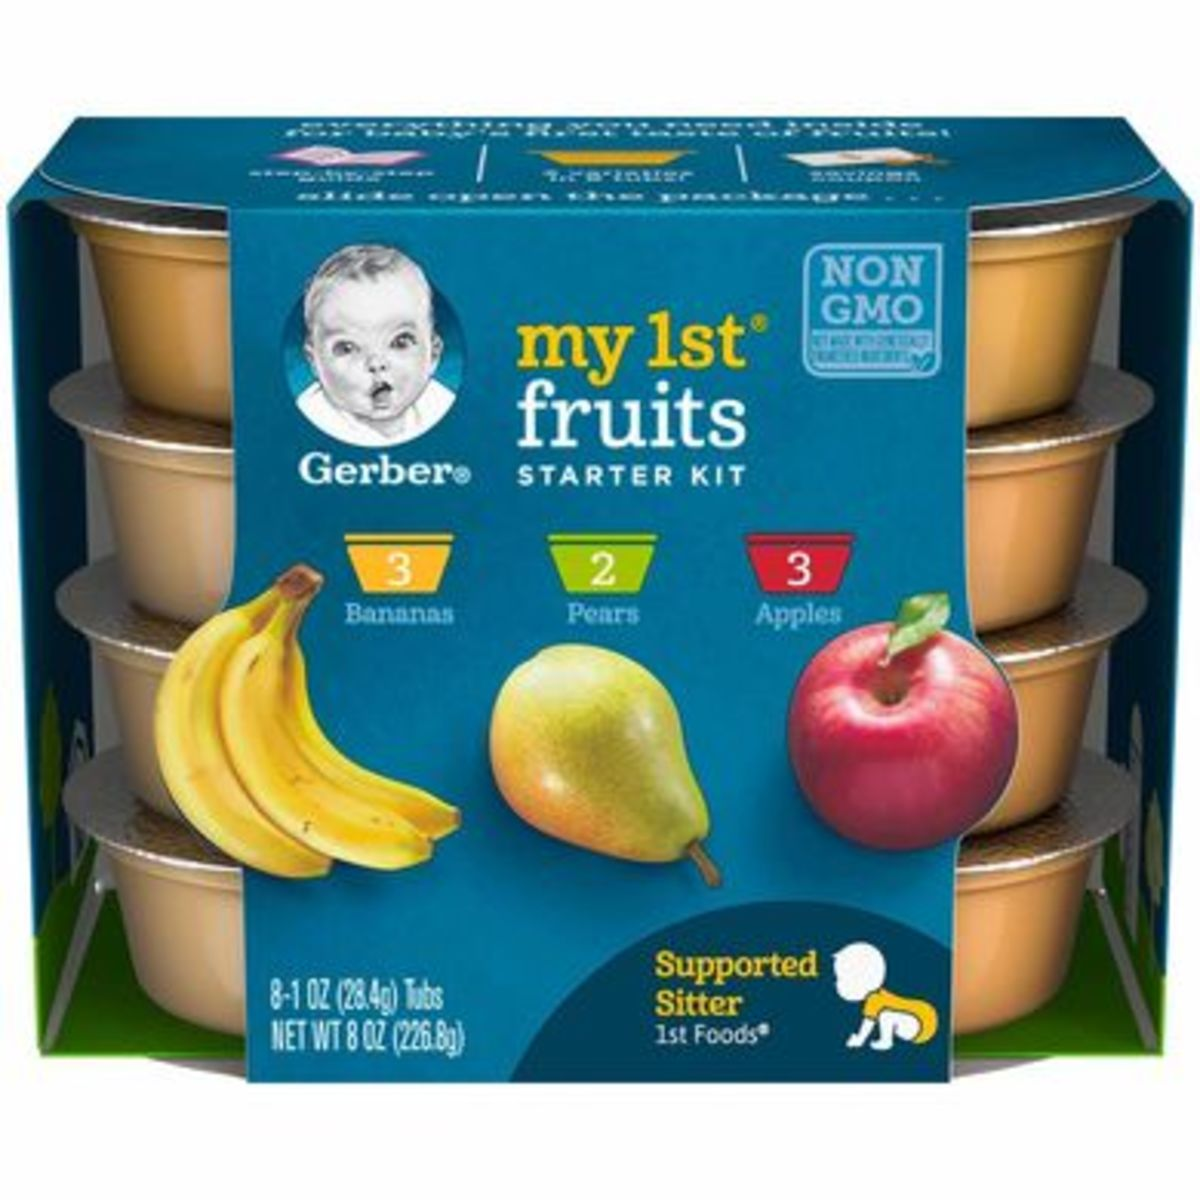 """The little yellow """"supported sitter"""" 1st foods mark on the lower right hand corner is what you'll want to look for when picking up your baby food. Those will be the ones you'll want to try first."""